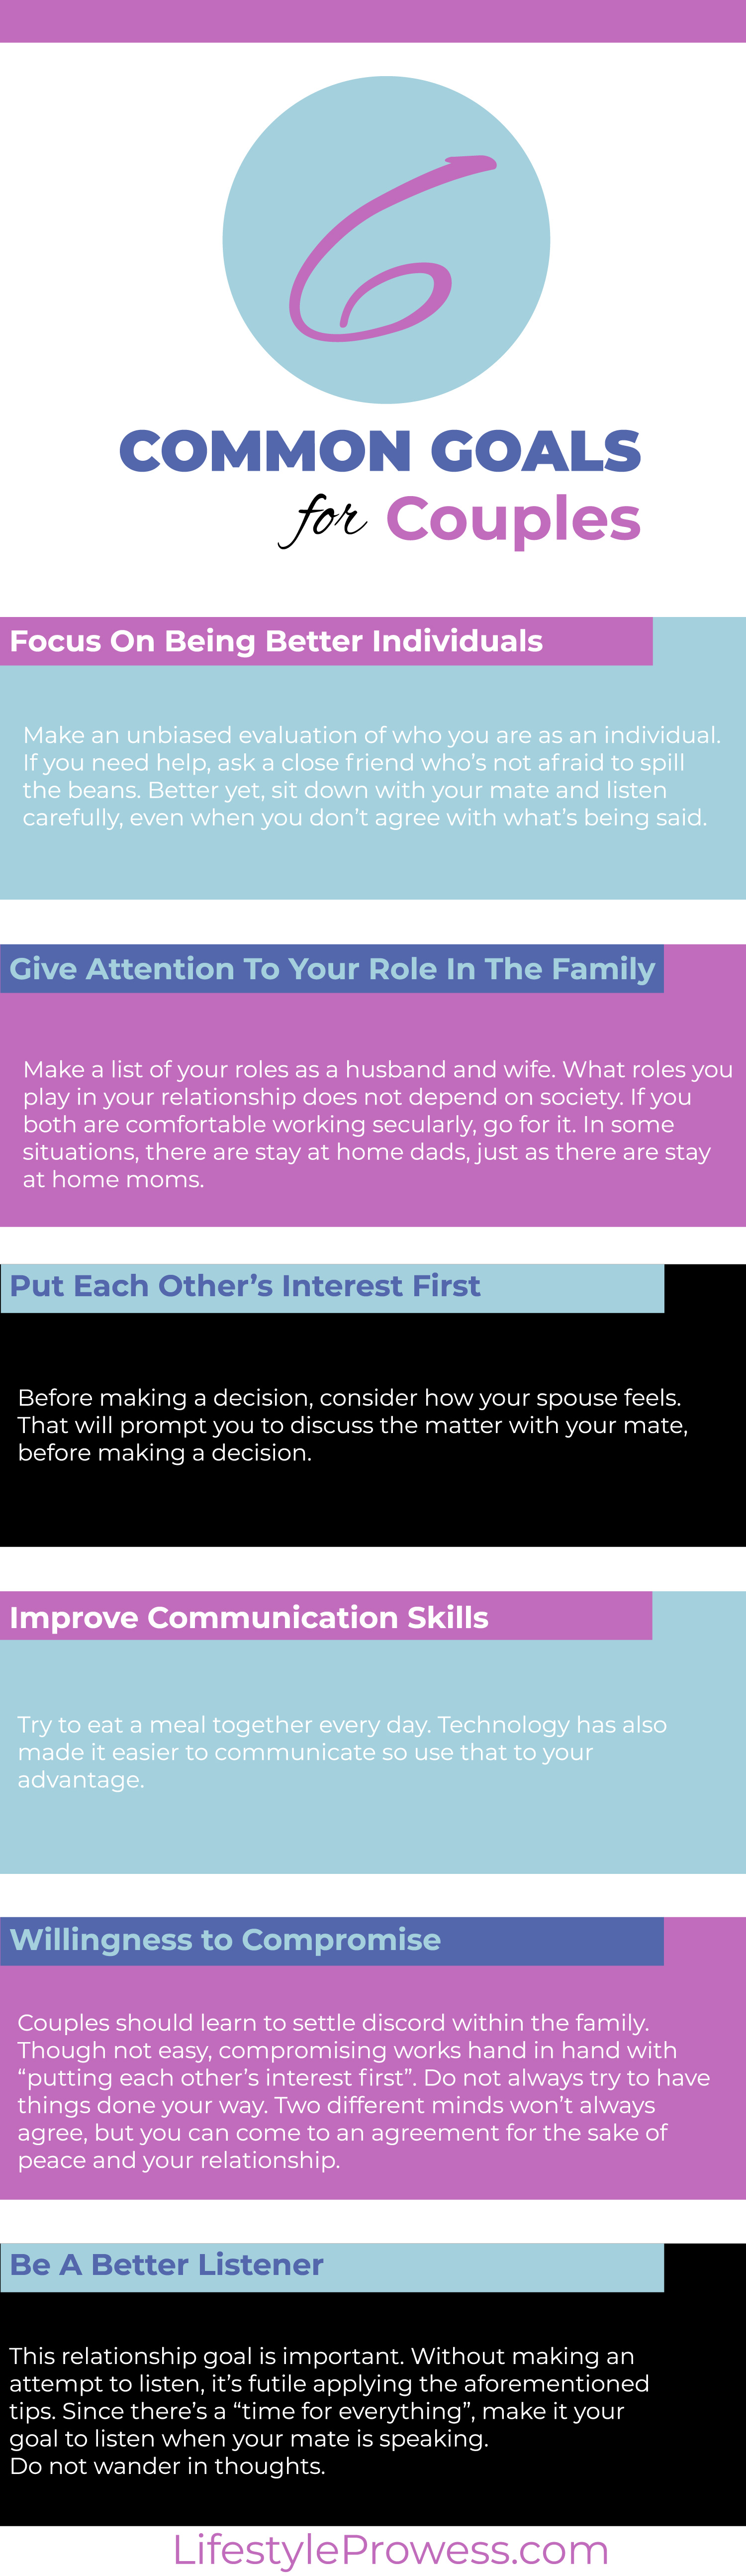 Learn how to communicate better with your spouse